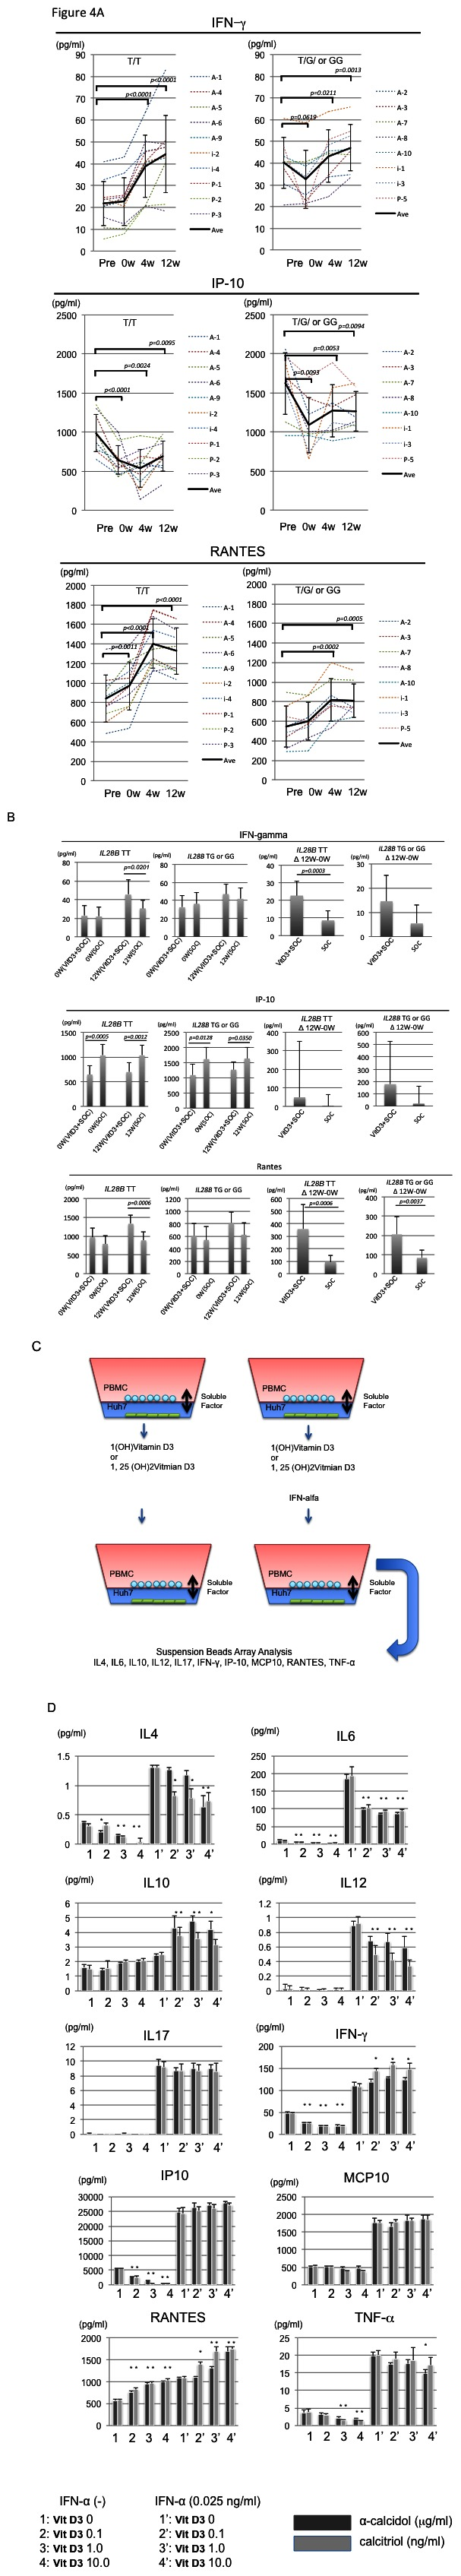 Cytokine profiles in the ex vivo and in vitro samples treated with vitamin D3. Sequential data of quantification of 3 cytokines (IFN-γ, IP-10 and RANTES) during 1(OH) vitamin D3 pre-treatment (pre vs 0w), 1(OH) vitamin D3/Peg-IFN/RBV therapy are shown (A). Dotted lines indicate the data of each subject. Black lines indicate the averaged data. Error bars indicate standard deviation. The data from IL28B (T/T) subjects or IL28B (T/G or G/G) subjects are shown in the independent graphs (A). Comparisons of the amounts of 3 cytokines (IFN-γ, IP-10 and RANTES) between the 1(OH) vitamin D3/PEG-IFN/RBV group (VitD3+standard of care (SOC)) and Peg-IFN/RBV group (SOC) at 0 weeks and 12 weeks after the start of Peg-IFN/RBV treatment are shown (B). Analysis of the changes in the amounts of the 3 cytokines (IFNγ, IP-10 and RANTES) during 12 weeks treatment of Peg-IFN/RBV is shown. Schema of in vitro -analysis of co-culture is shown (B). alfa-calcidol: 1(OH)vitamin D3 and calcitriol: 1,25(OH)vitamin D3 were used to analyze the cytokine production in vitro . Black bars indicate the data from samples treated with alfa-calcidol. Gray bars indicate the data from samples treated with calcitriol. *p